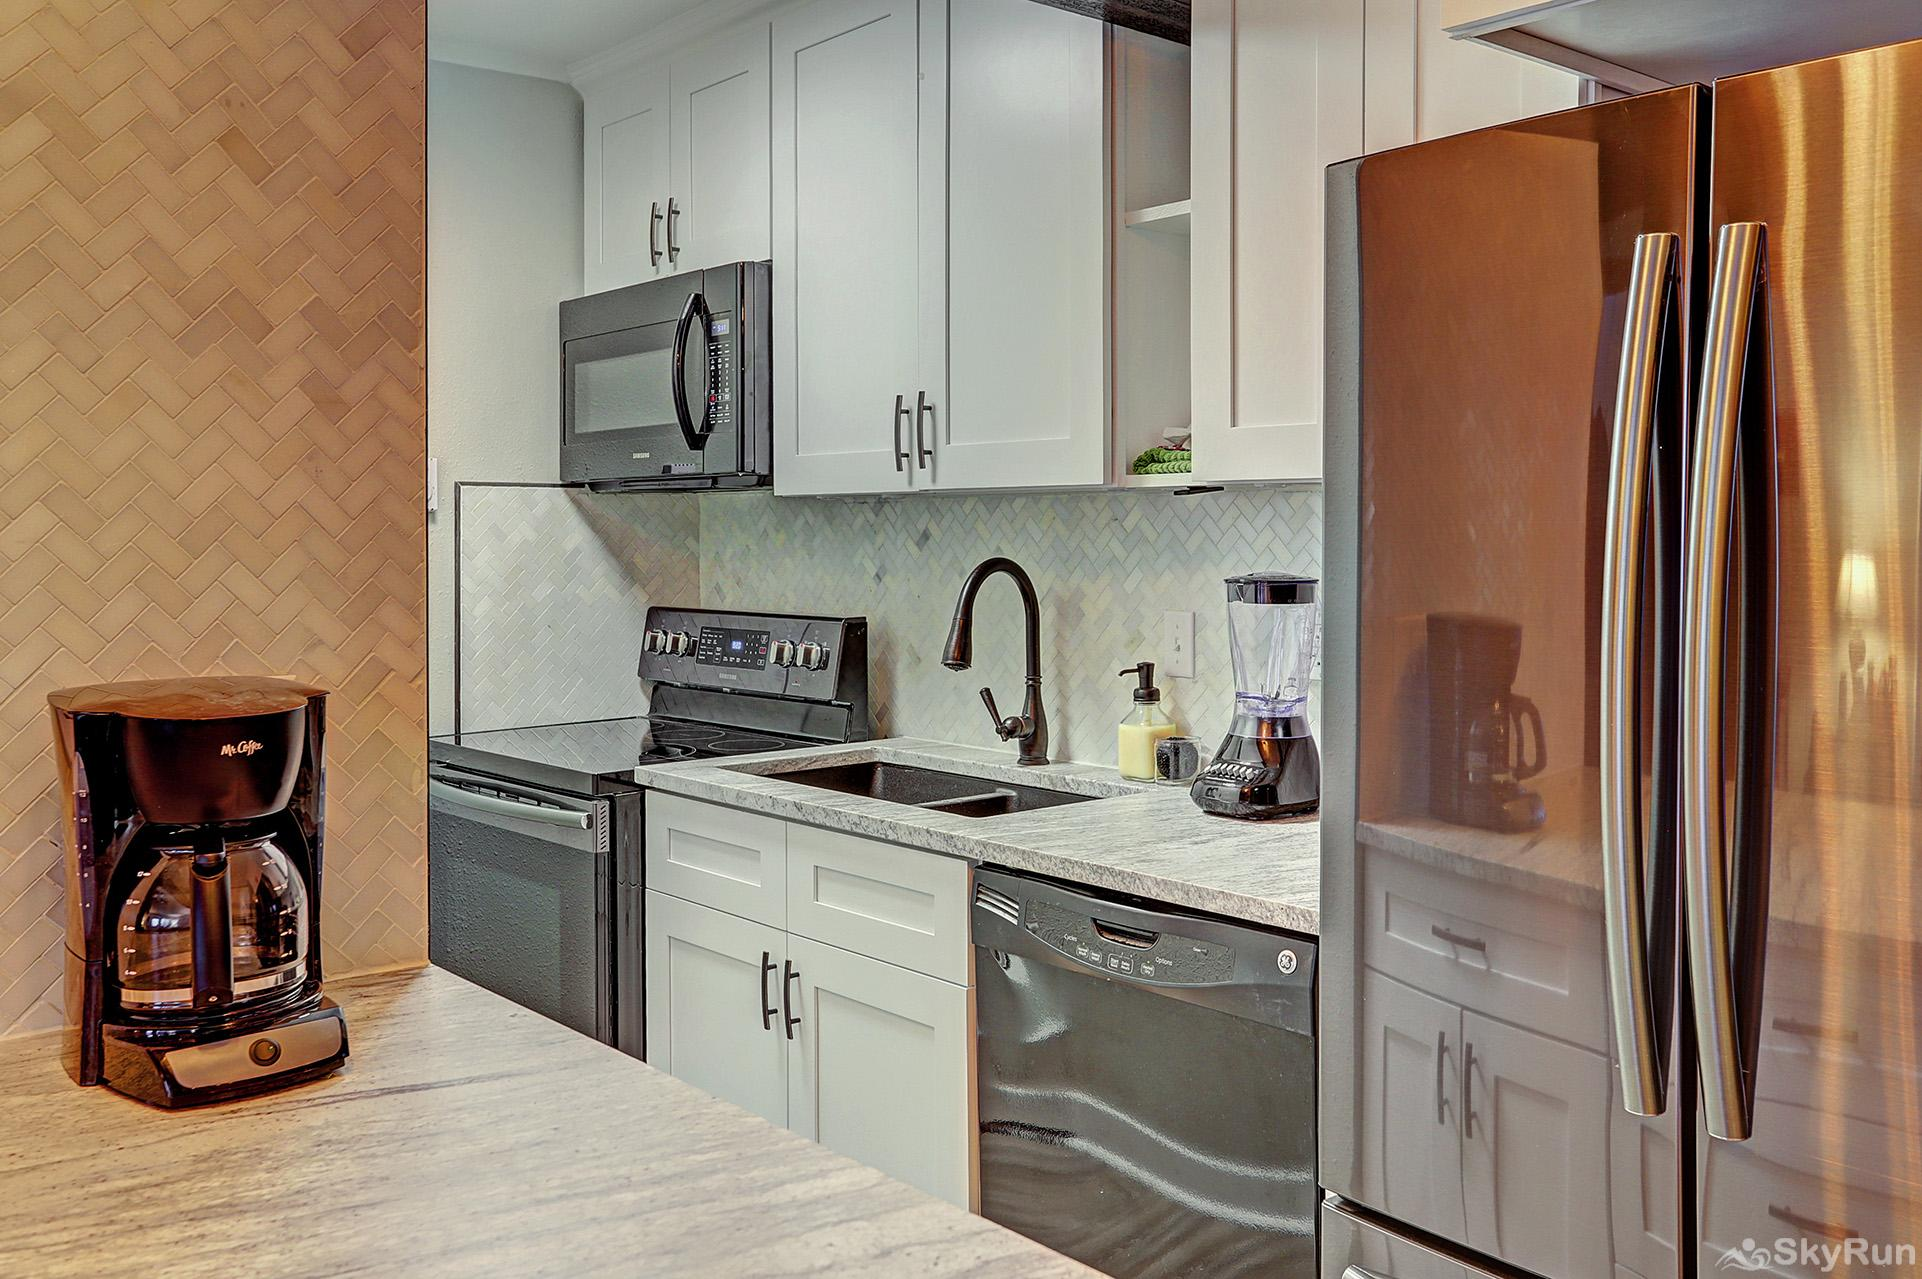 Knotty Pine Lodge Newly remodeled kitchen with modern appliances